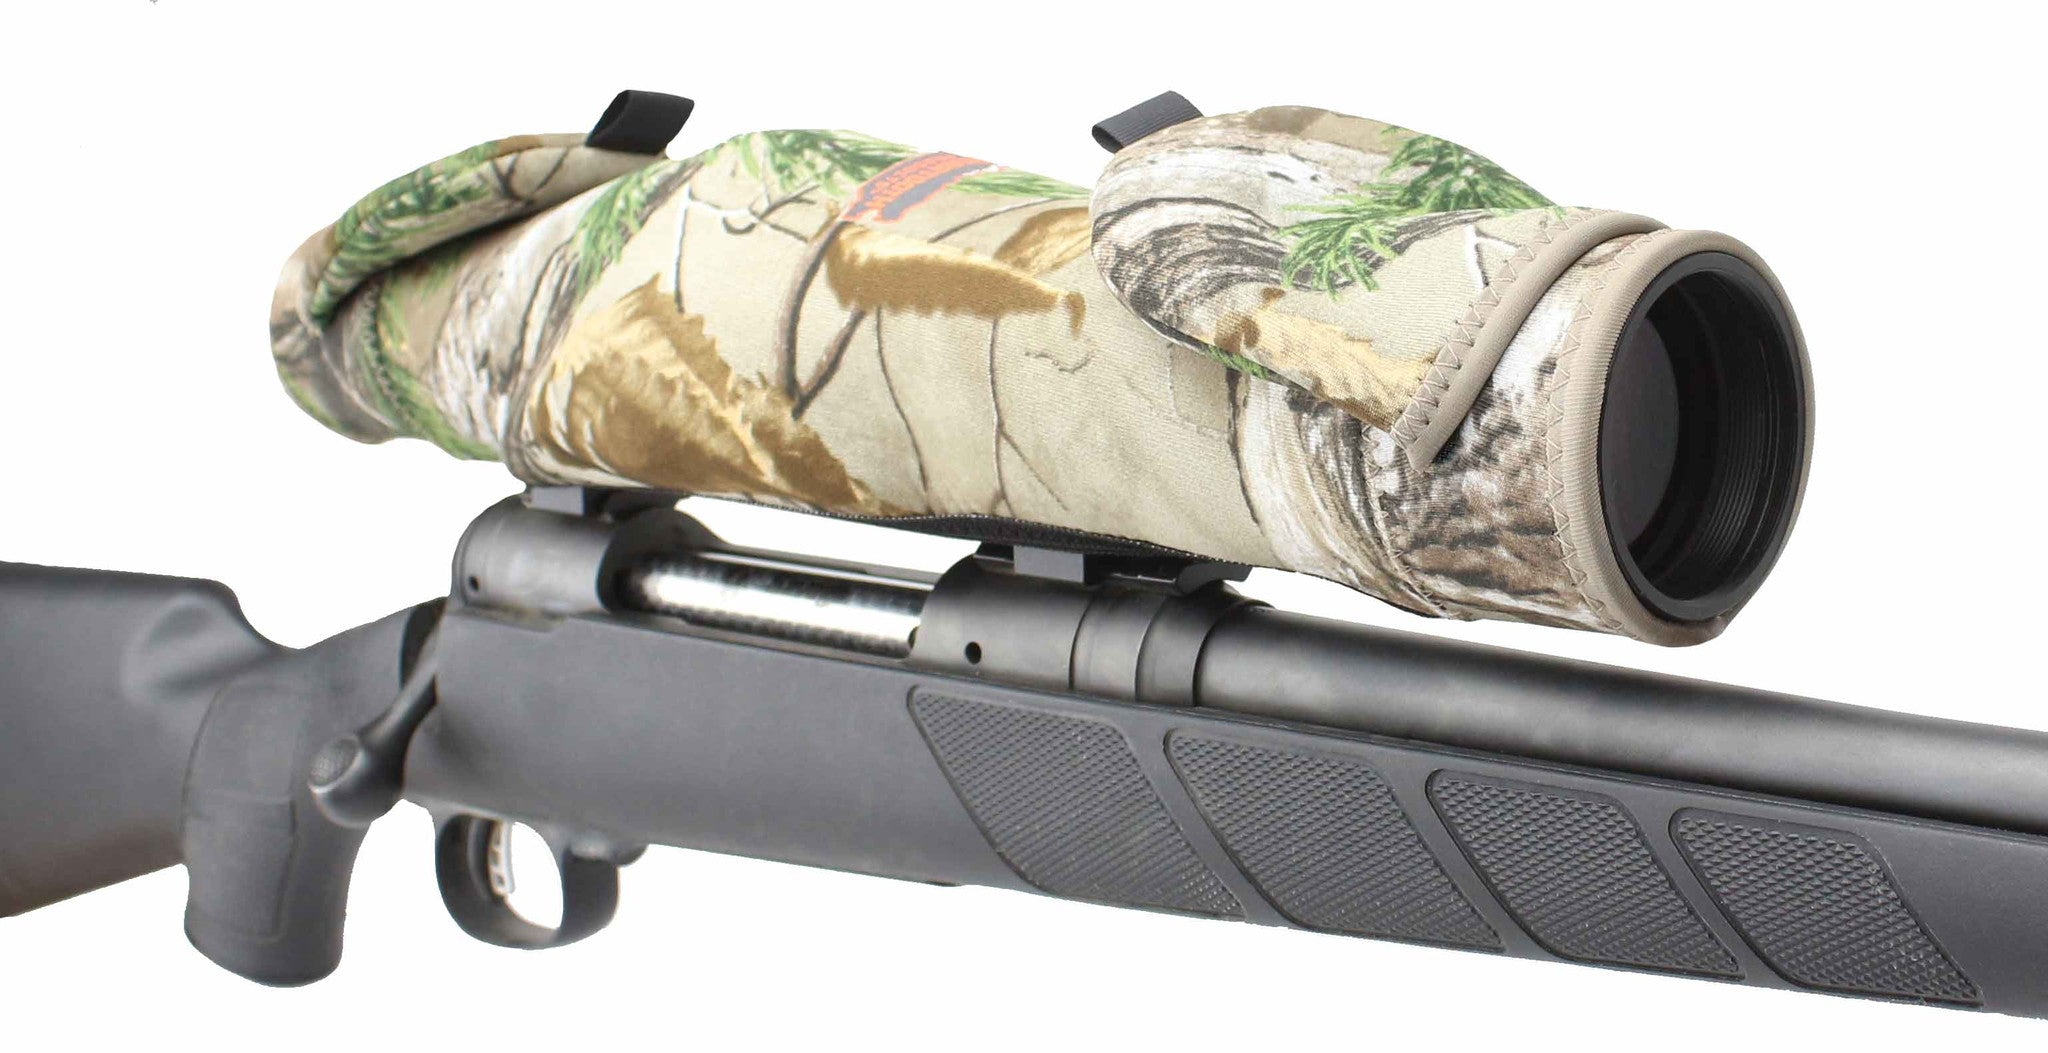 SCOPEMITT - Realtree Xtra